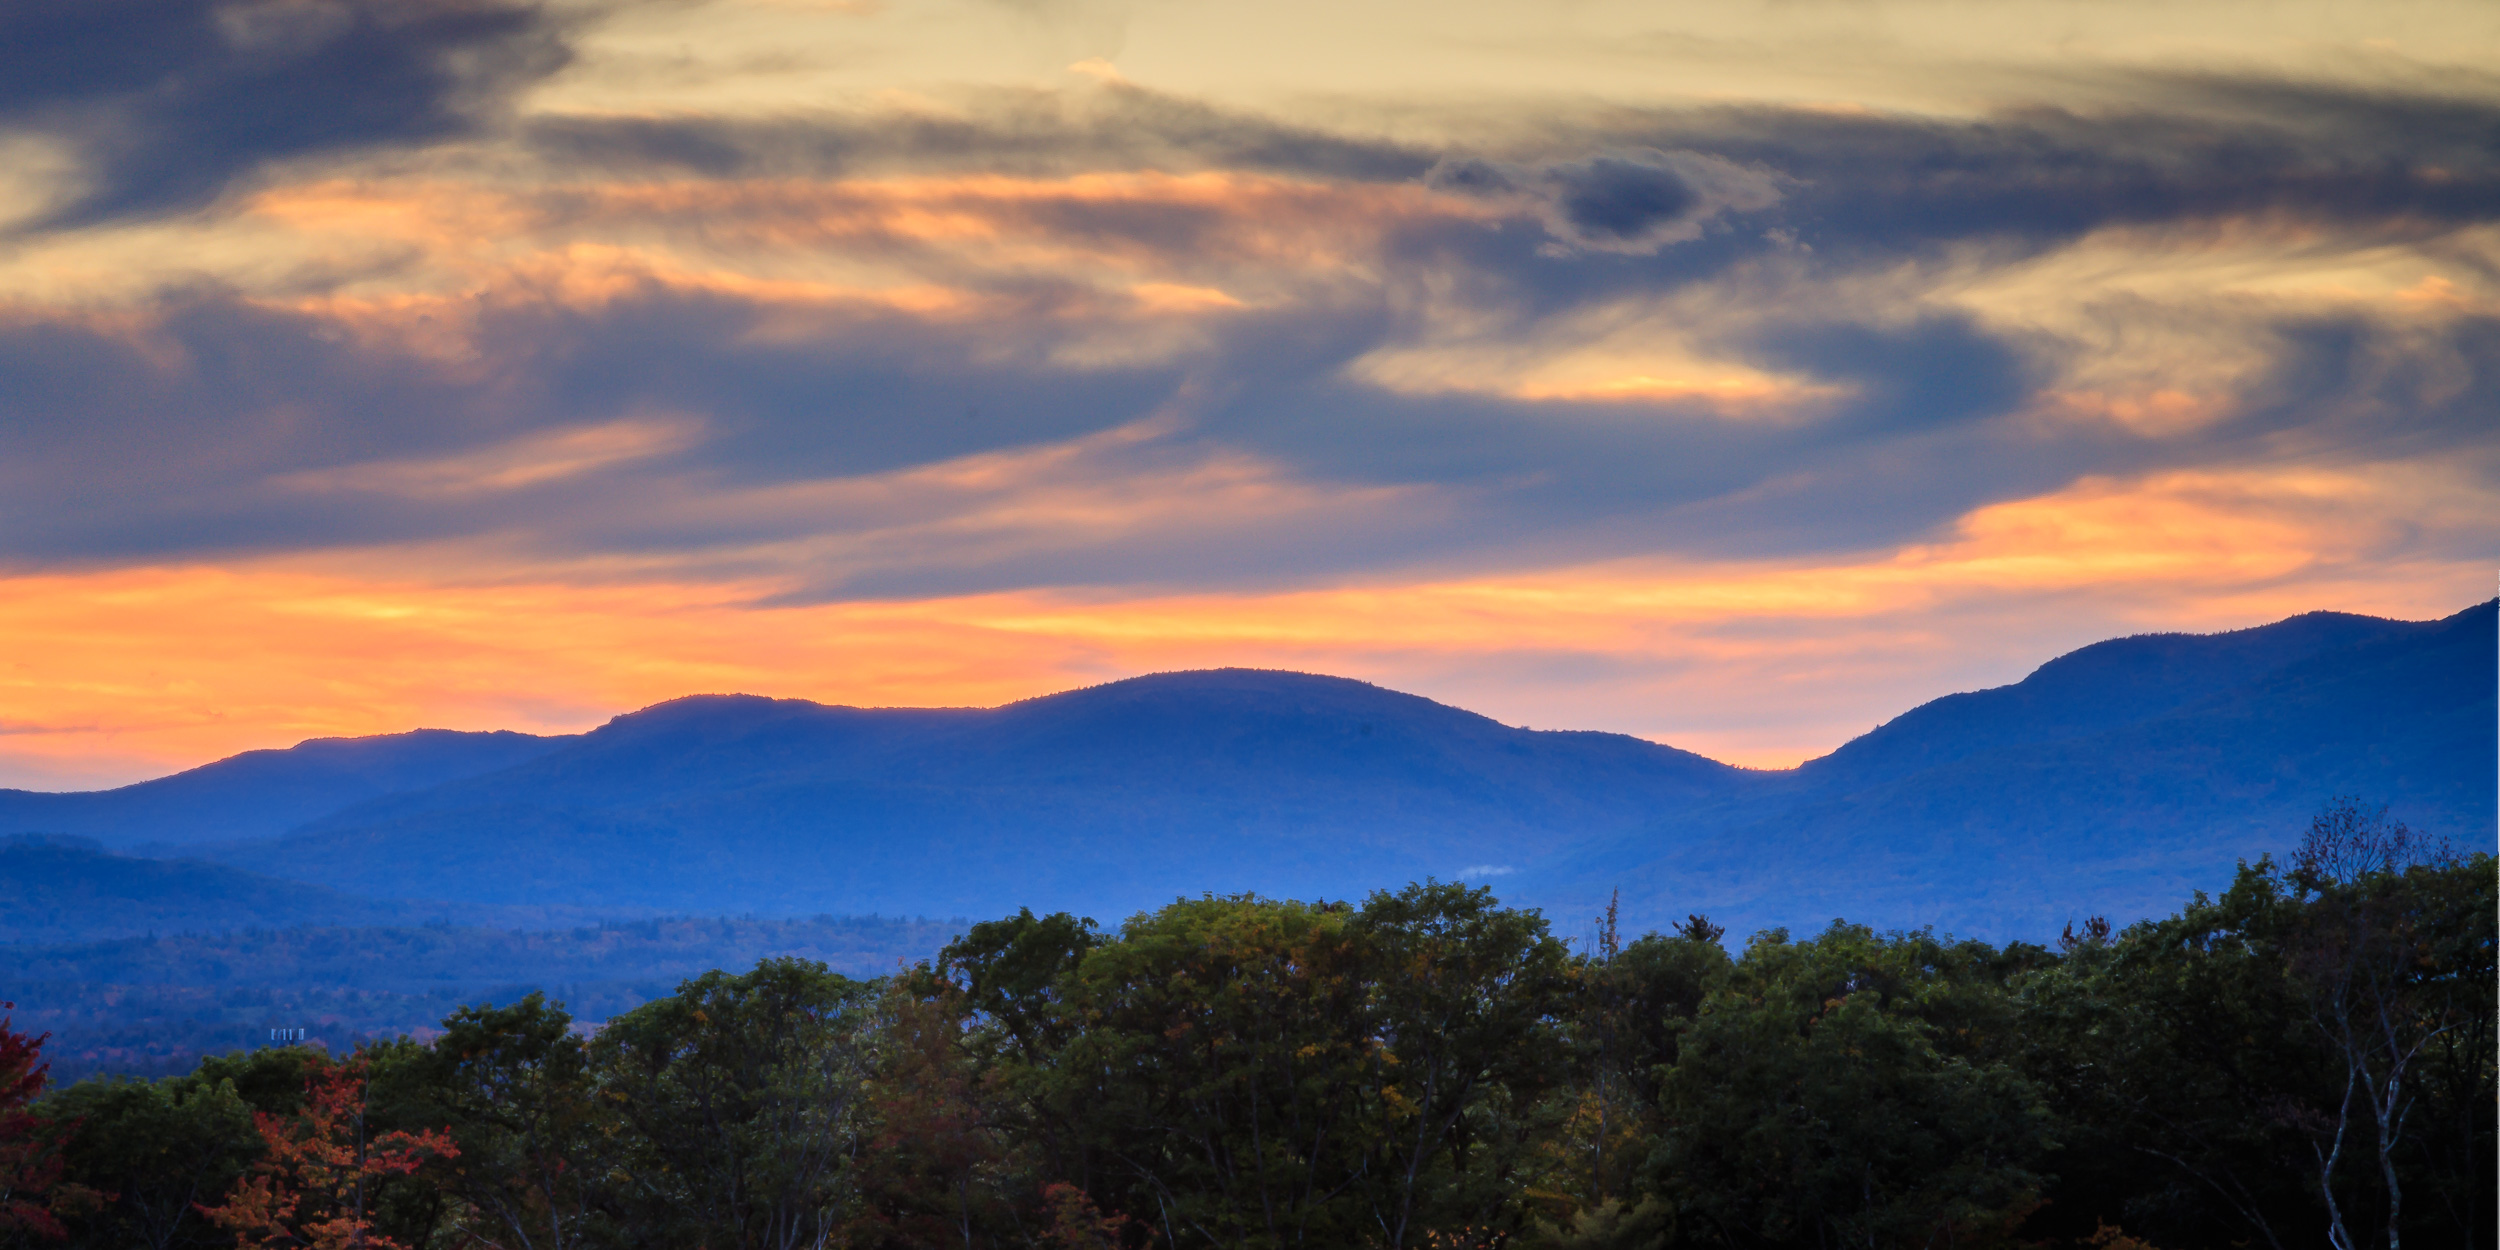 Sunset over Whiteface Hollow